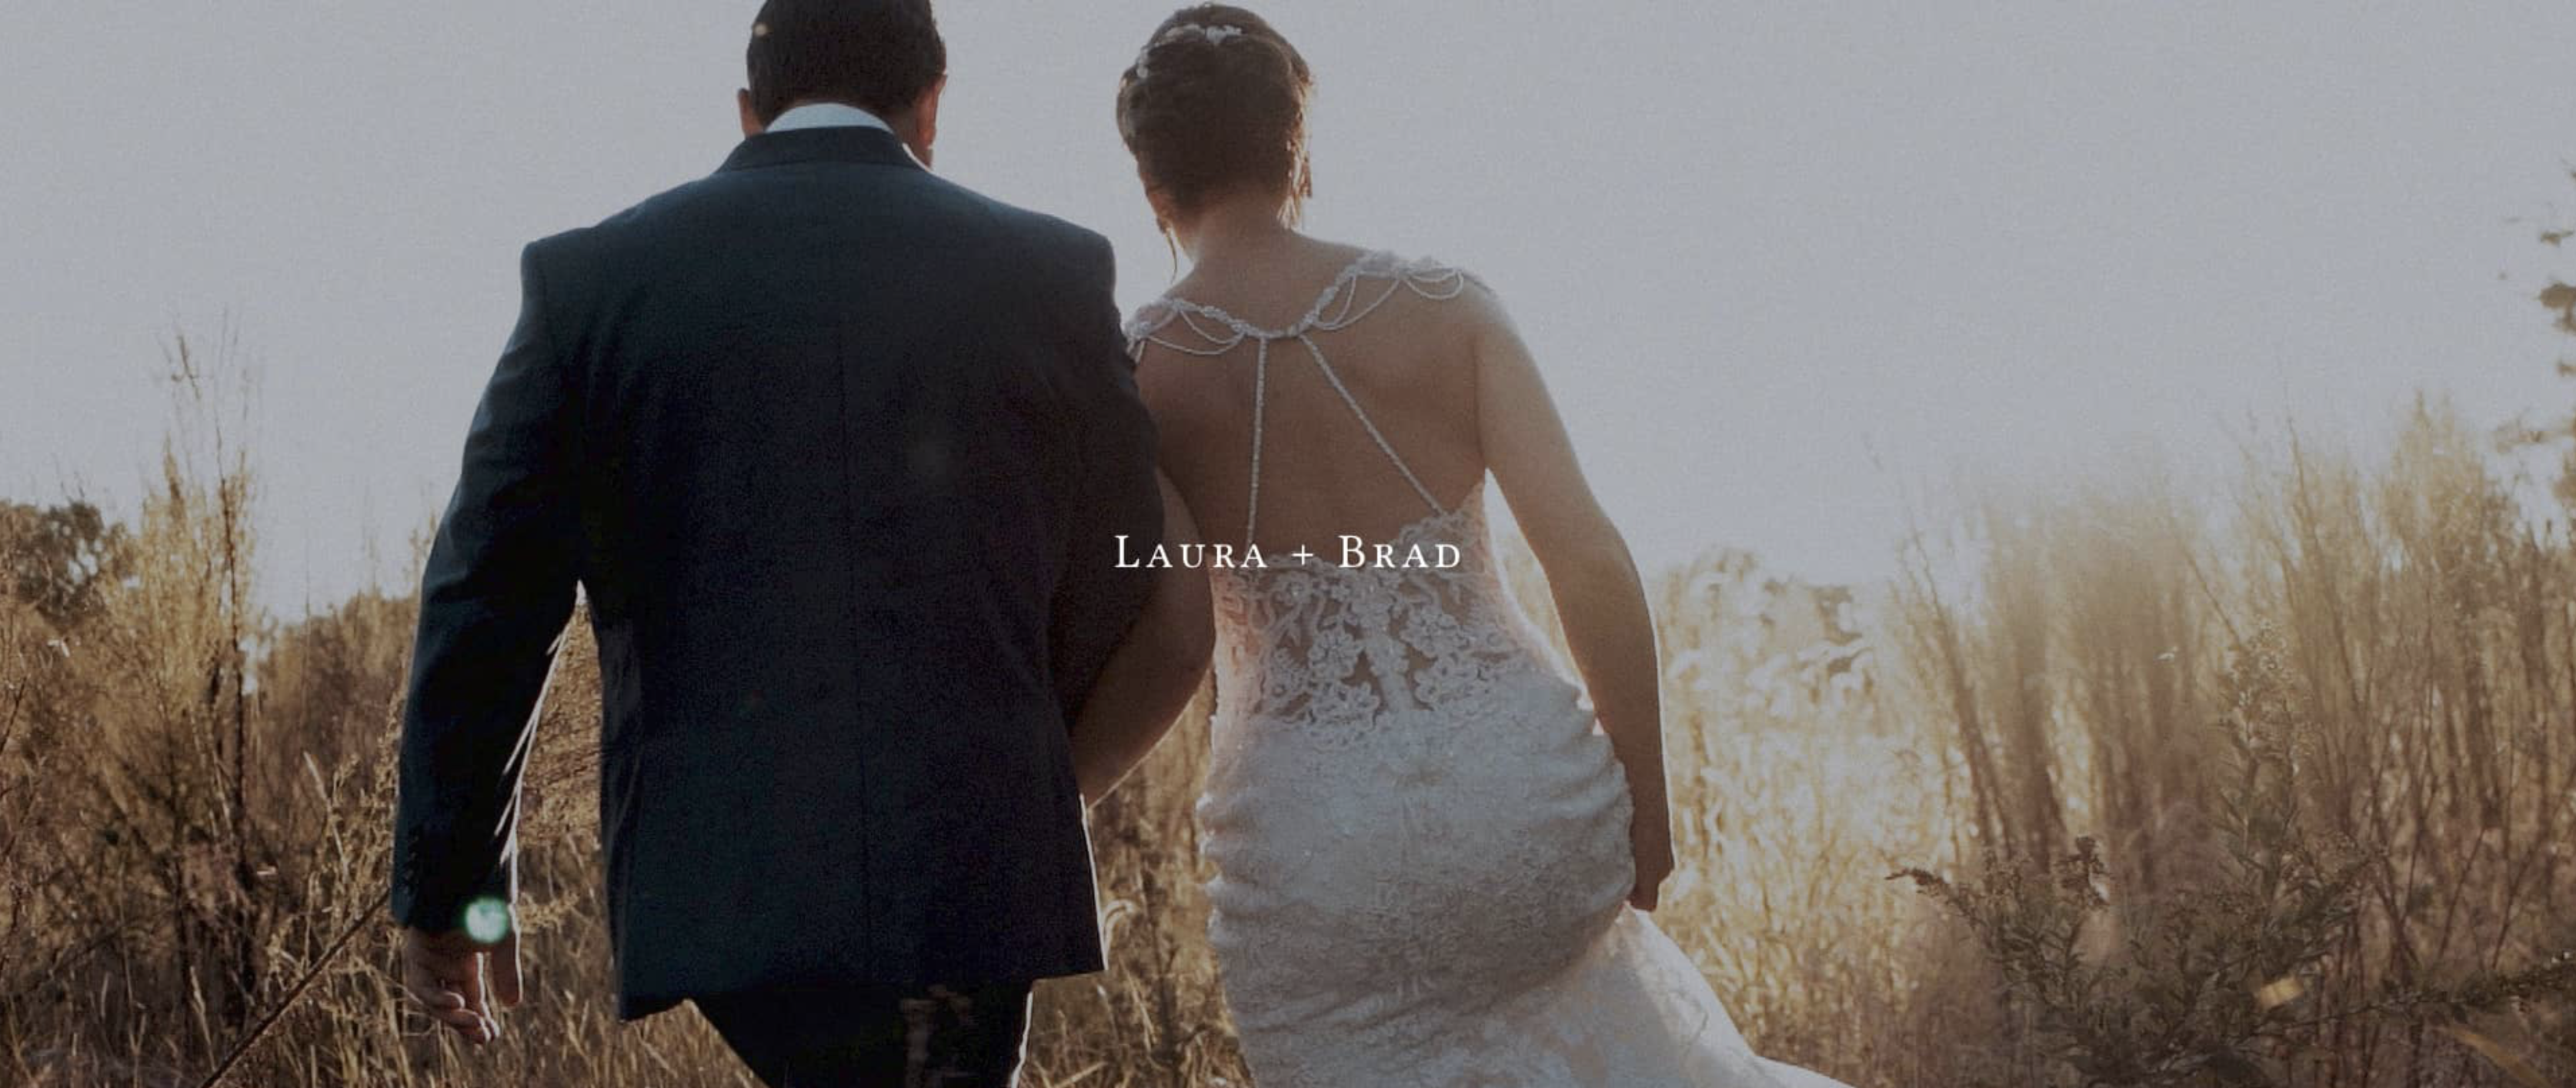 Laura + Brad | York, Pennsylvania | Historic Shady Lane